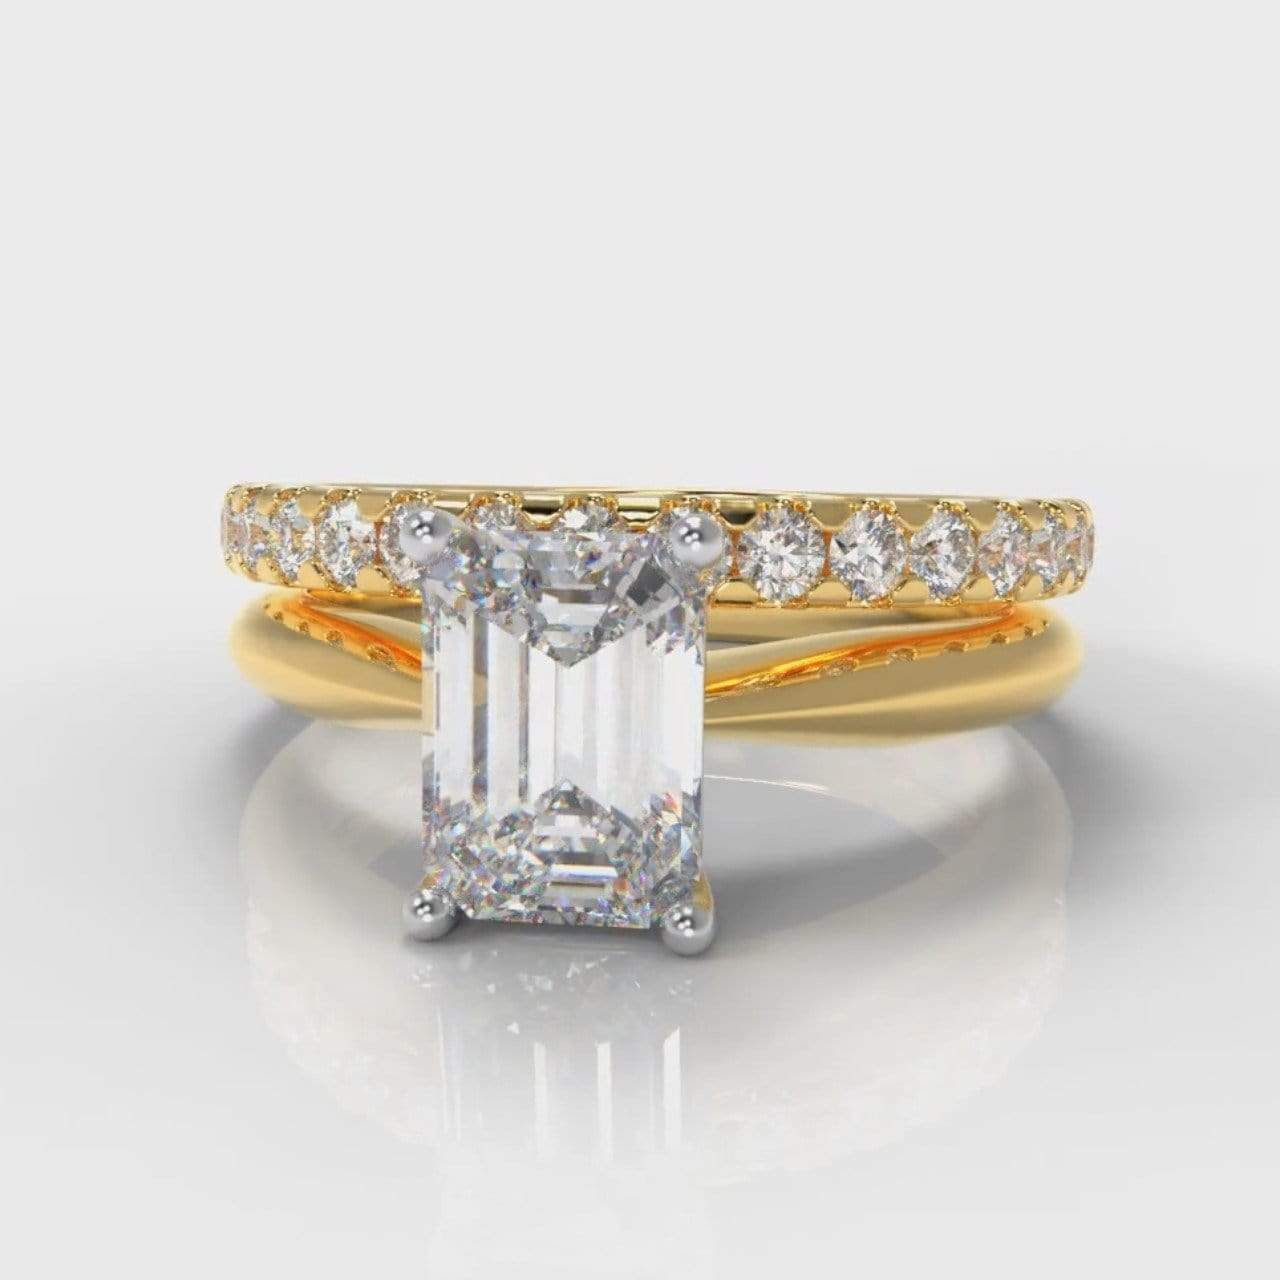 Classic Solitaire Emerald Cut Lab Diamond Bridal Ring Set - Yellow Gold